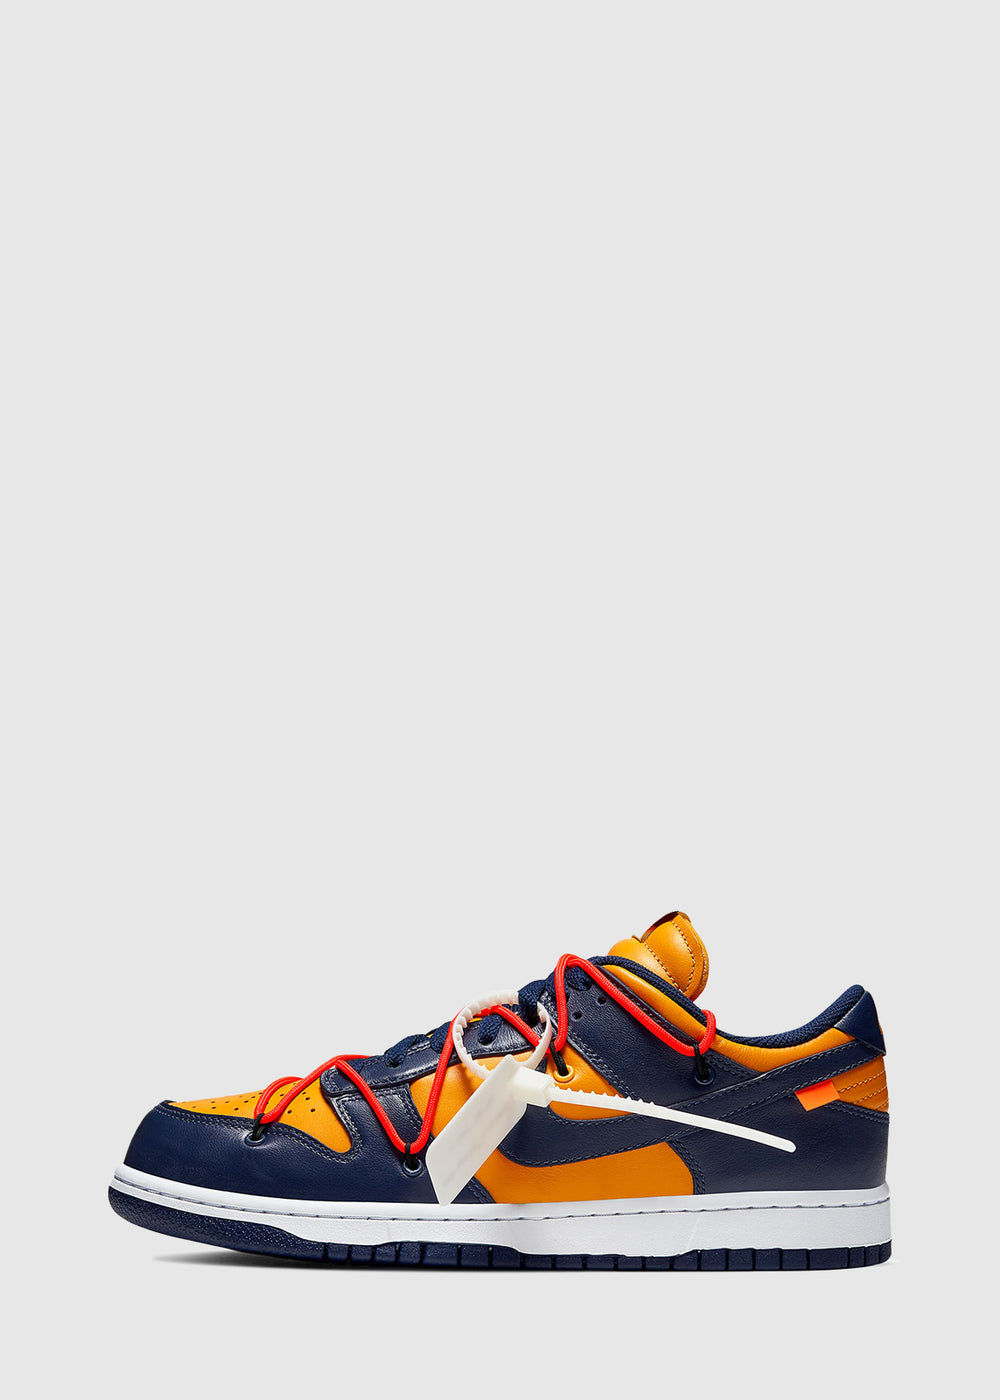 nike-x-off-white-dunk-low-navy-1